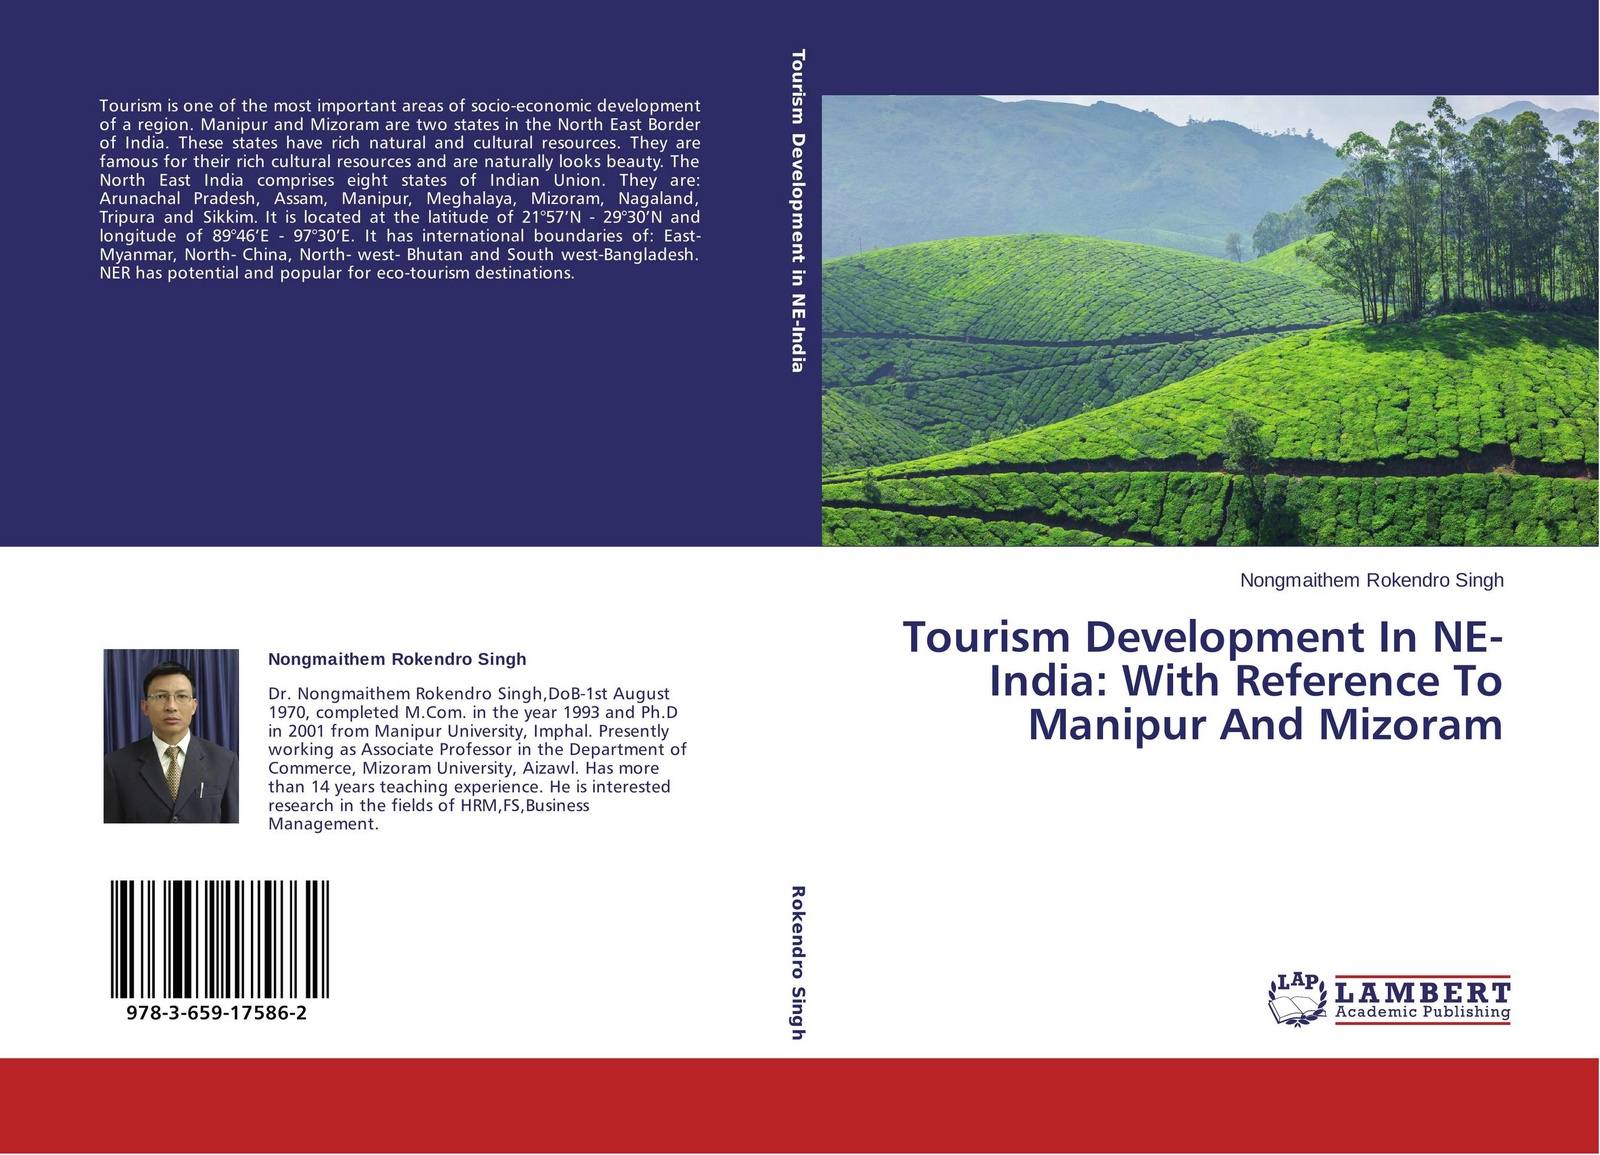 где купить Nongmaithem Rokendro Singh Tourism Development In NE-India: With Reference To Manipur And Mizoram недорого с доставкой